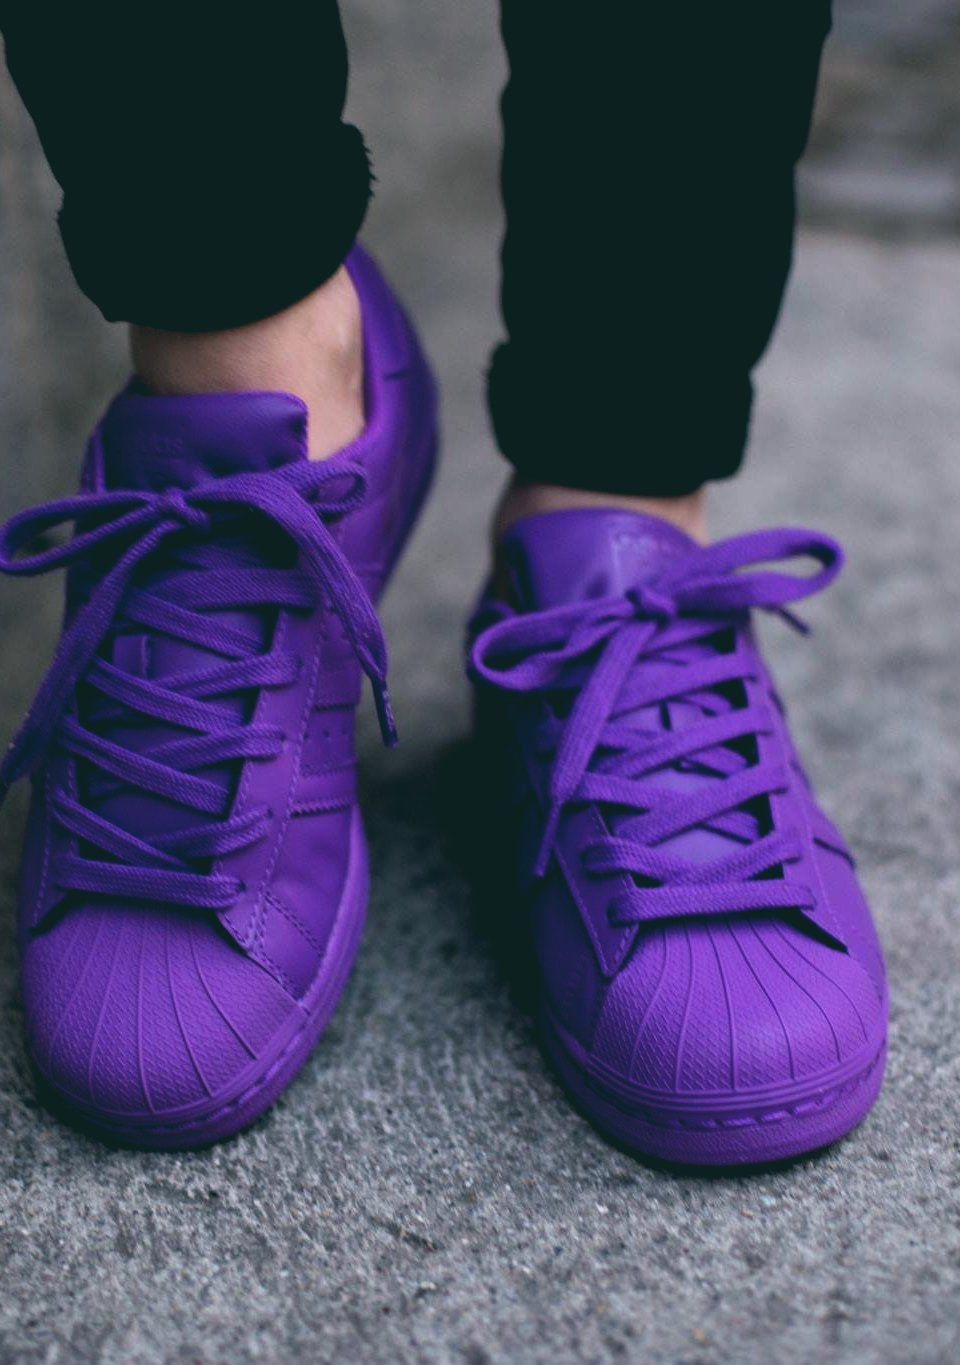 low priced 23941 2d2c6 pies de mujer con tenis adidas superstar morado